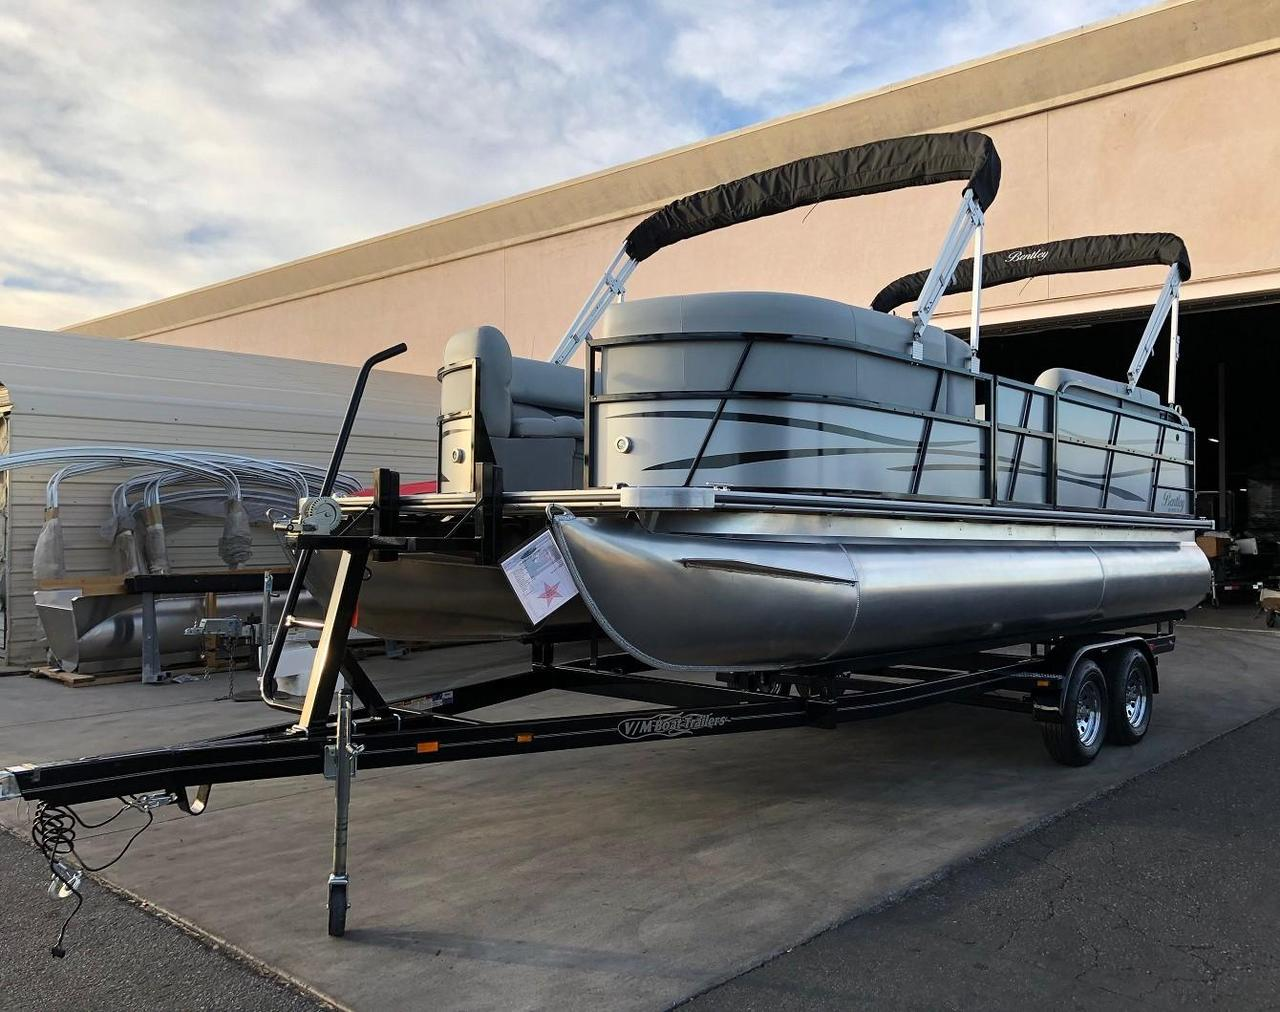 bentley hurricane new boats order dealers crestliner can pontoon aluminum boat sale for ky and pontoons alloworigin used special you deck aquapatio we accesskeyid disposition sweetwater any